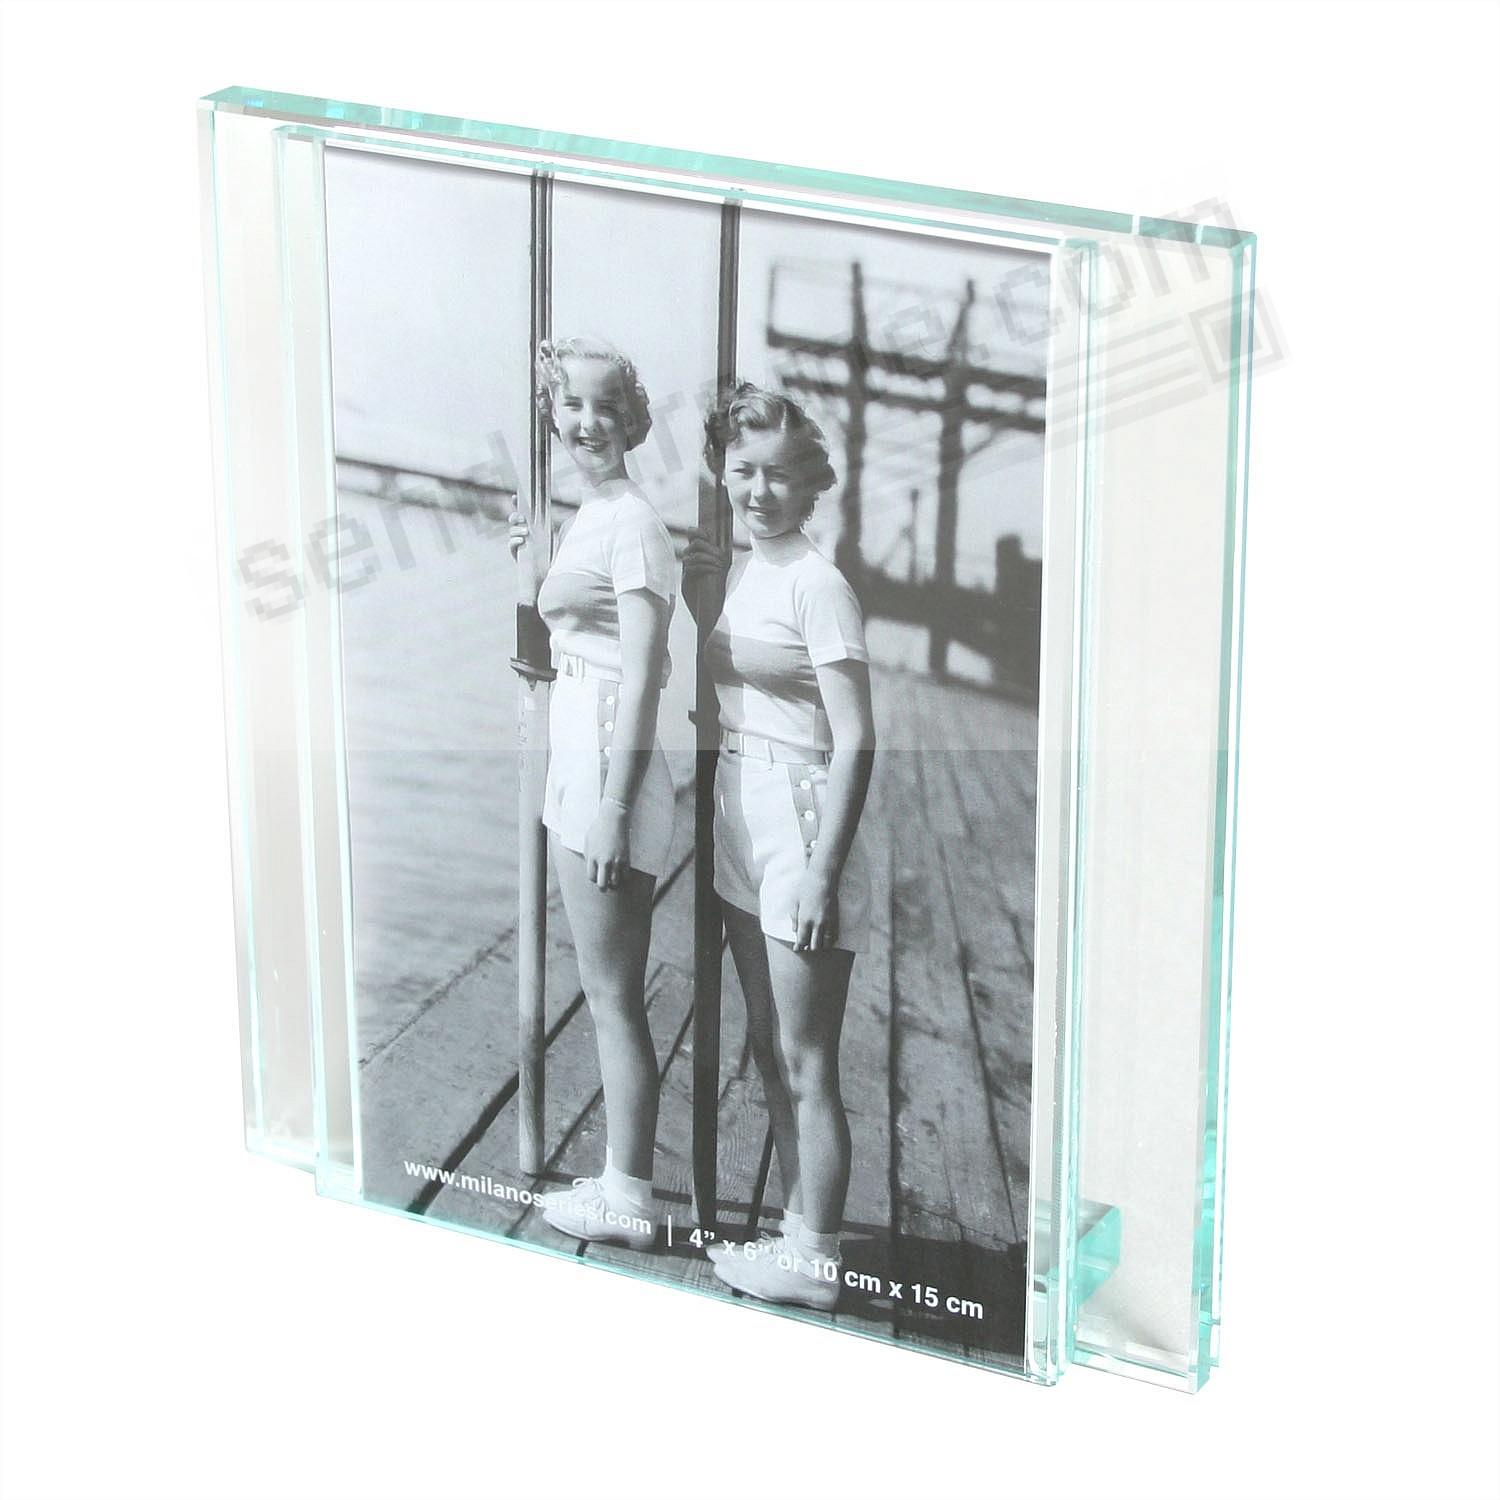 AMOROUS GLASS frame by Milano Series - Picture Frames, Photo Albums ...